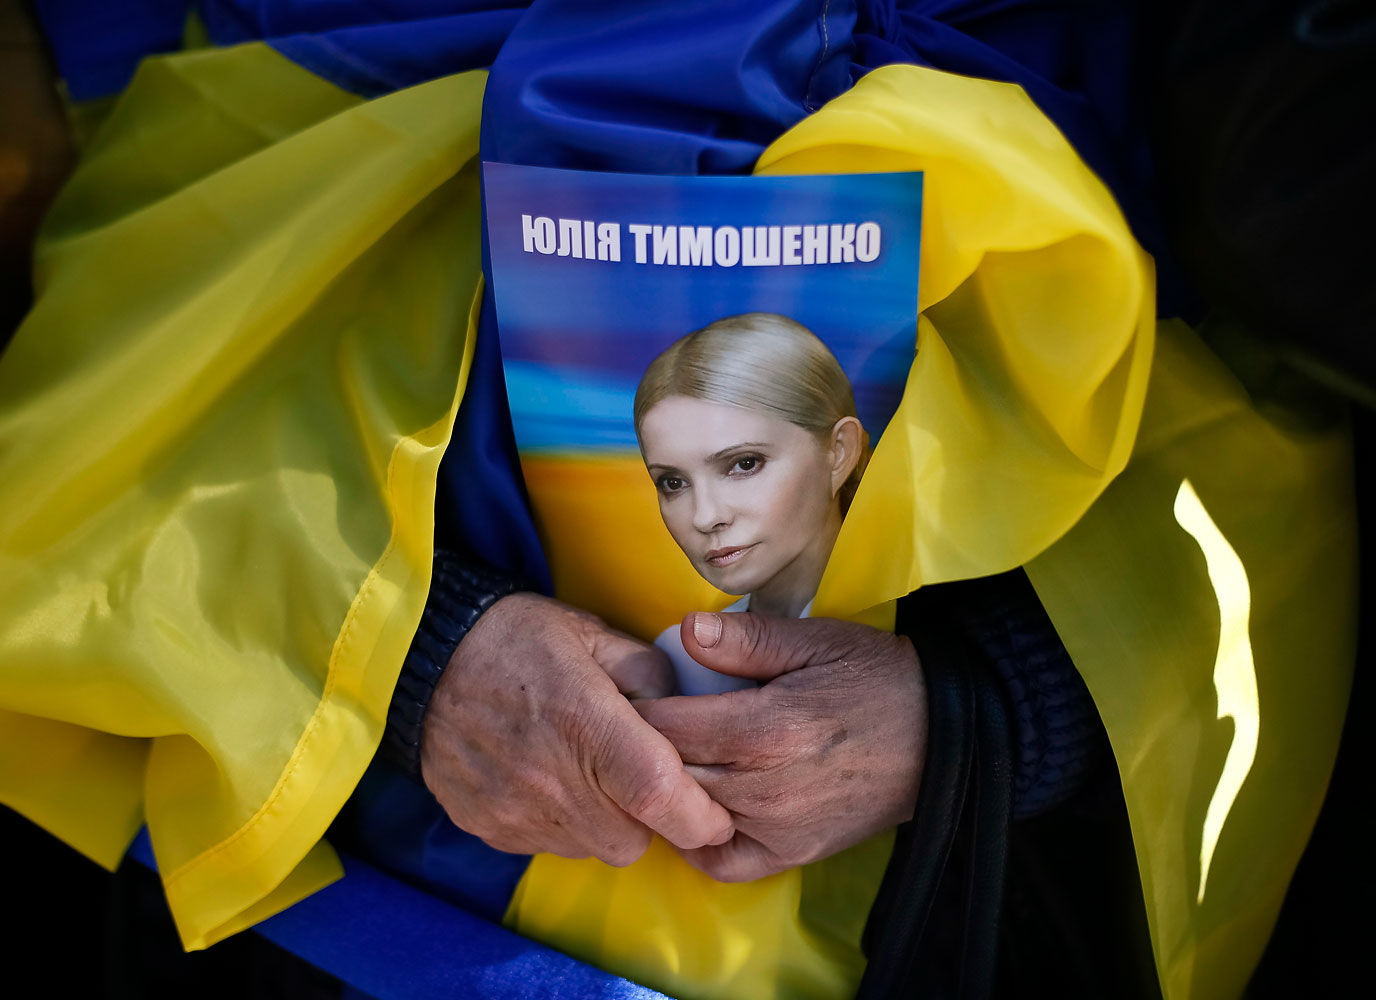 A supporter of former Prime Minister Yulia Tymoshenko in central Kiev on March 29, 2014